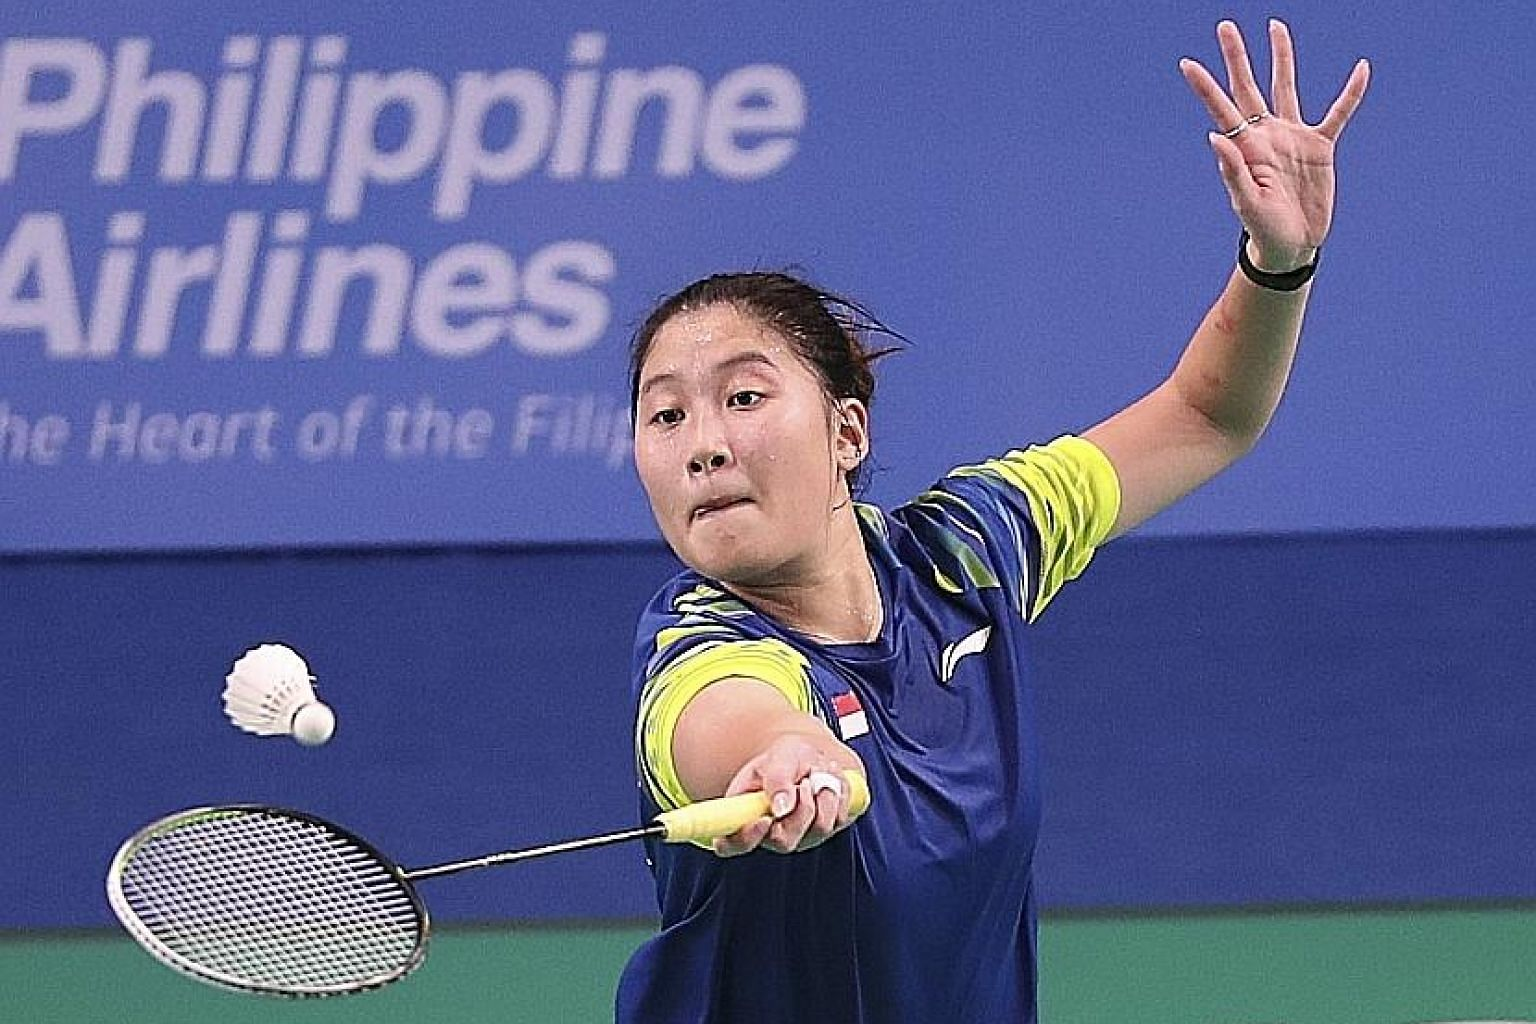 Jaslyn Hooi, 19, was the only Singaporean to score a point in the badminton semi-finals yesterday. The world No. 99 upset No. 27 Fitriani 13-21, 21-16, 21-16 in the 3-1 loss to Indonesia in the women's team event. PHOTO: SPORT SINGAPORE